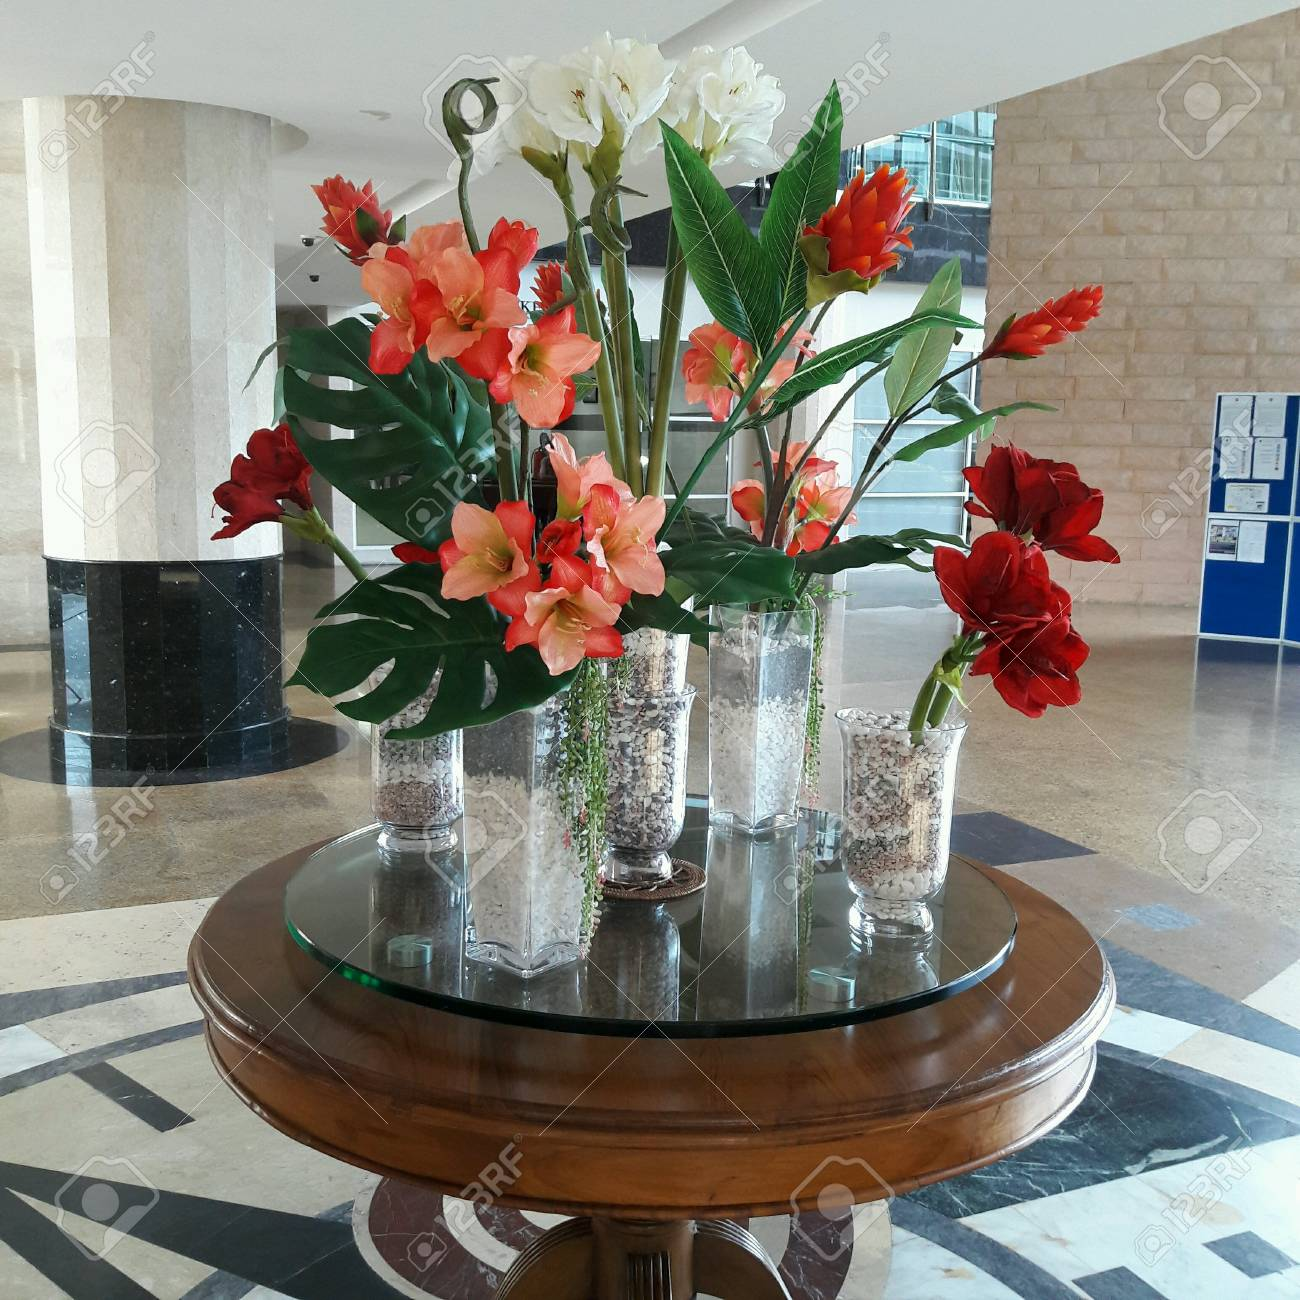 123RF.com & Group of small vases with artificial flowers.